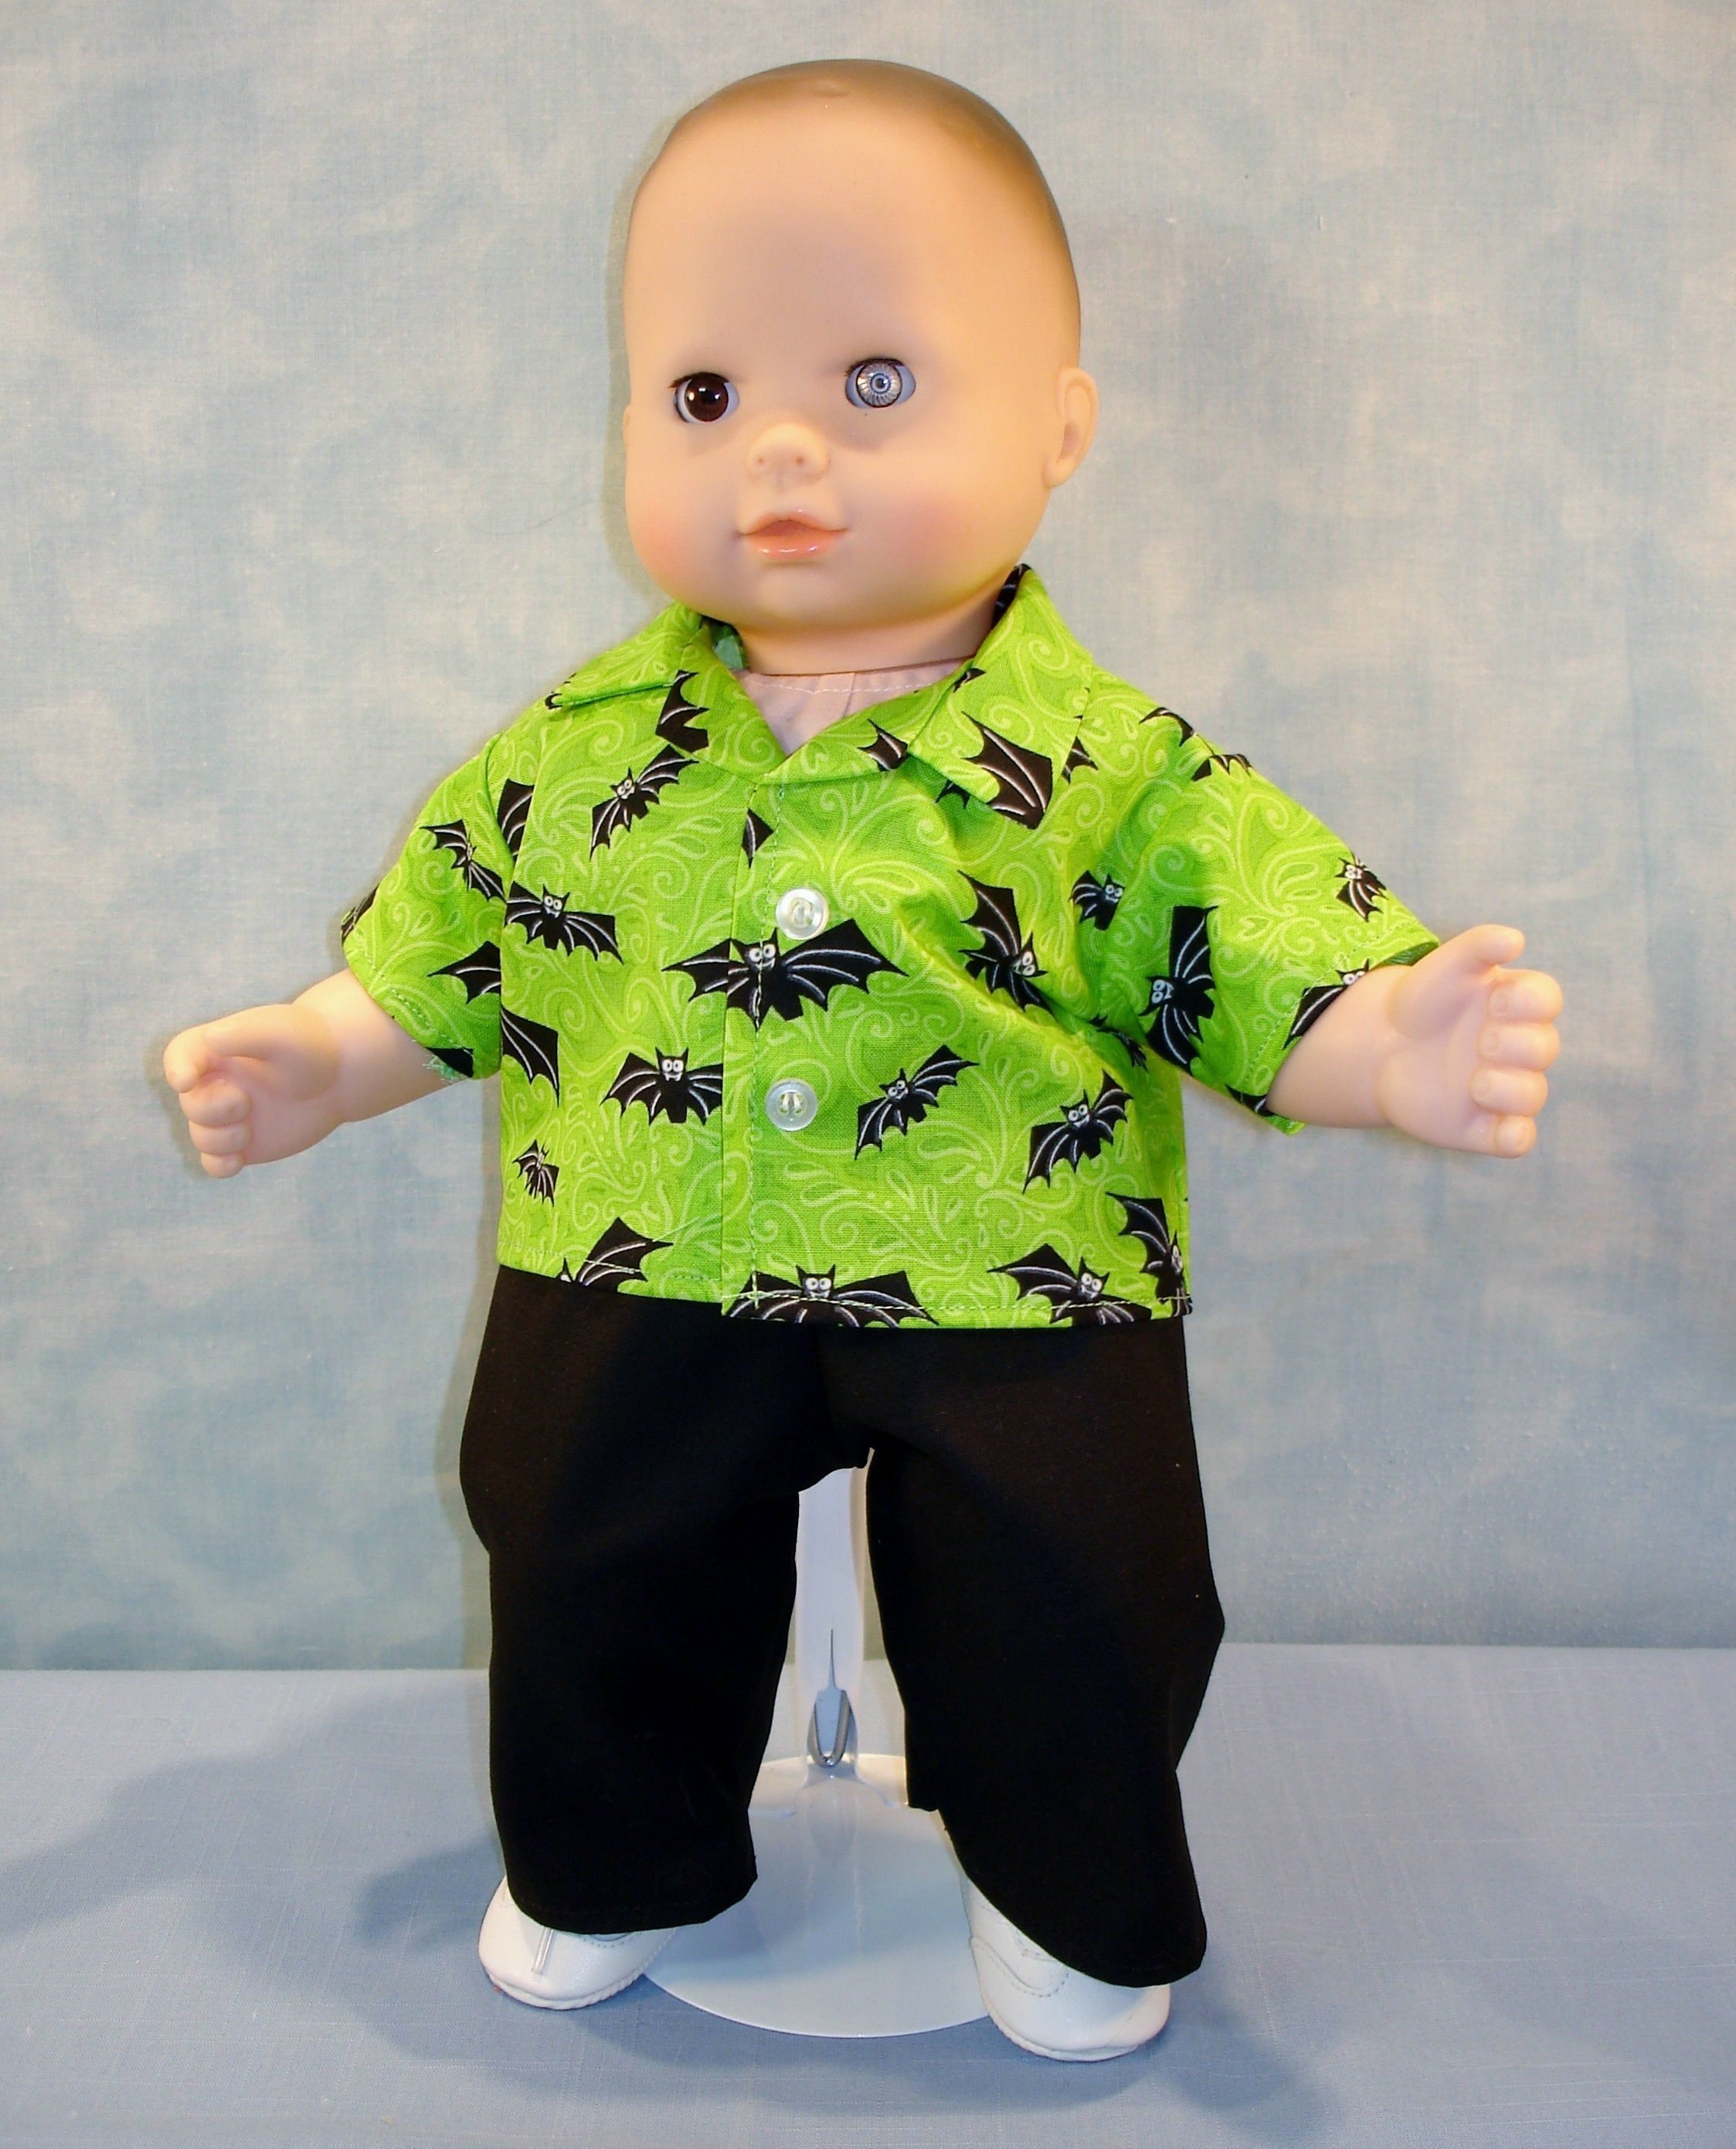 15 Inch Doll Clothes Bats On Green Shirt And Black Pants Etsy Halloween Shirts For Boys Doll Clothes Halloween Outfits